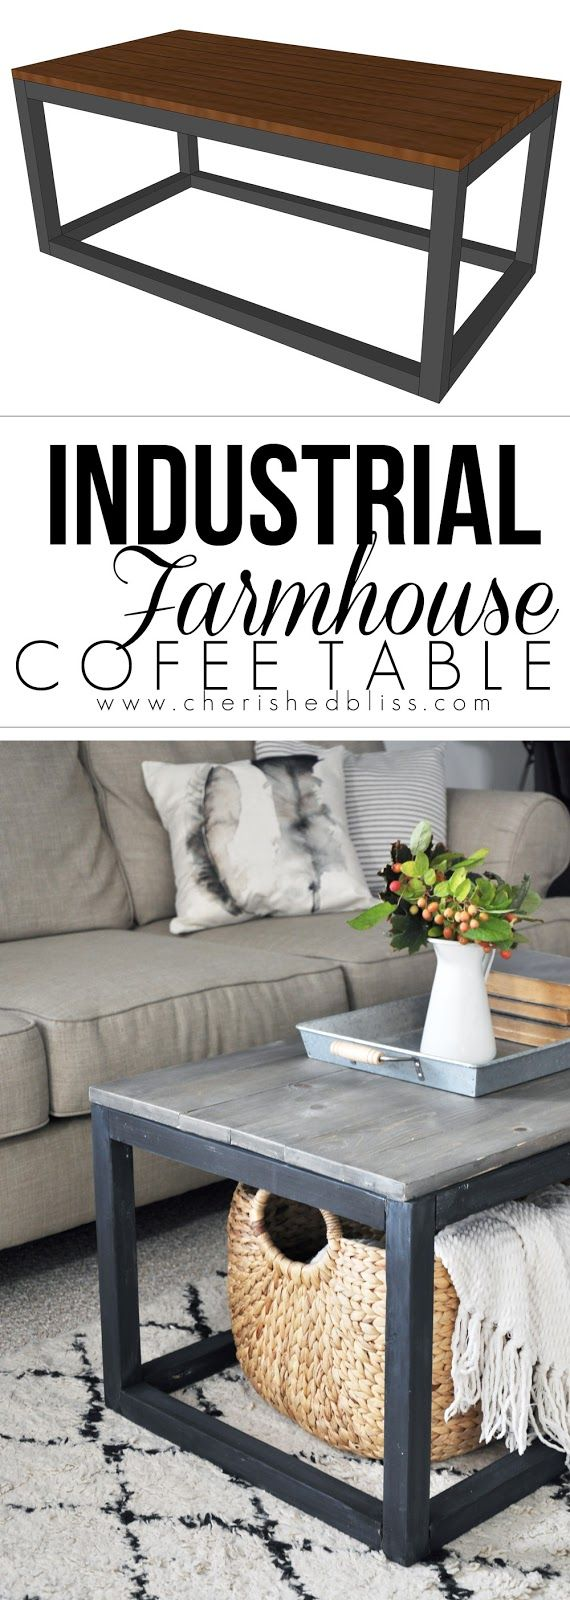 Get the Free Plan for this Industrial Farmhouse Coffee Table                                                                                                                                                                                 More